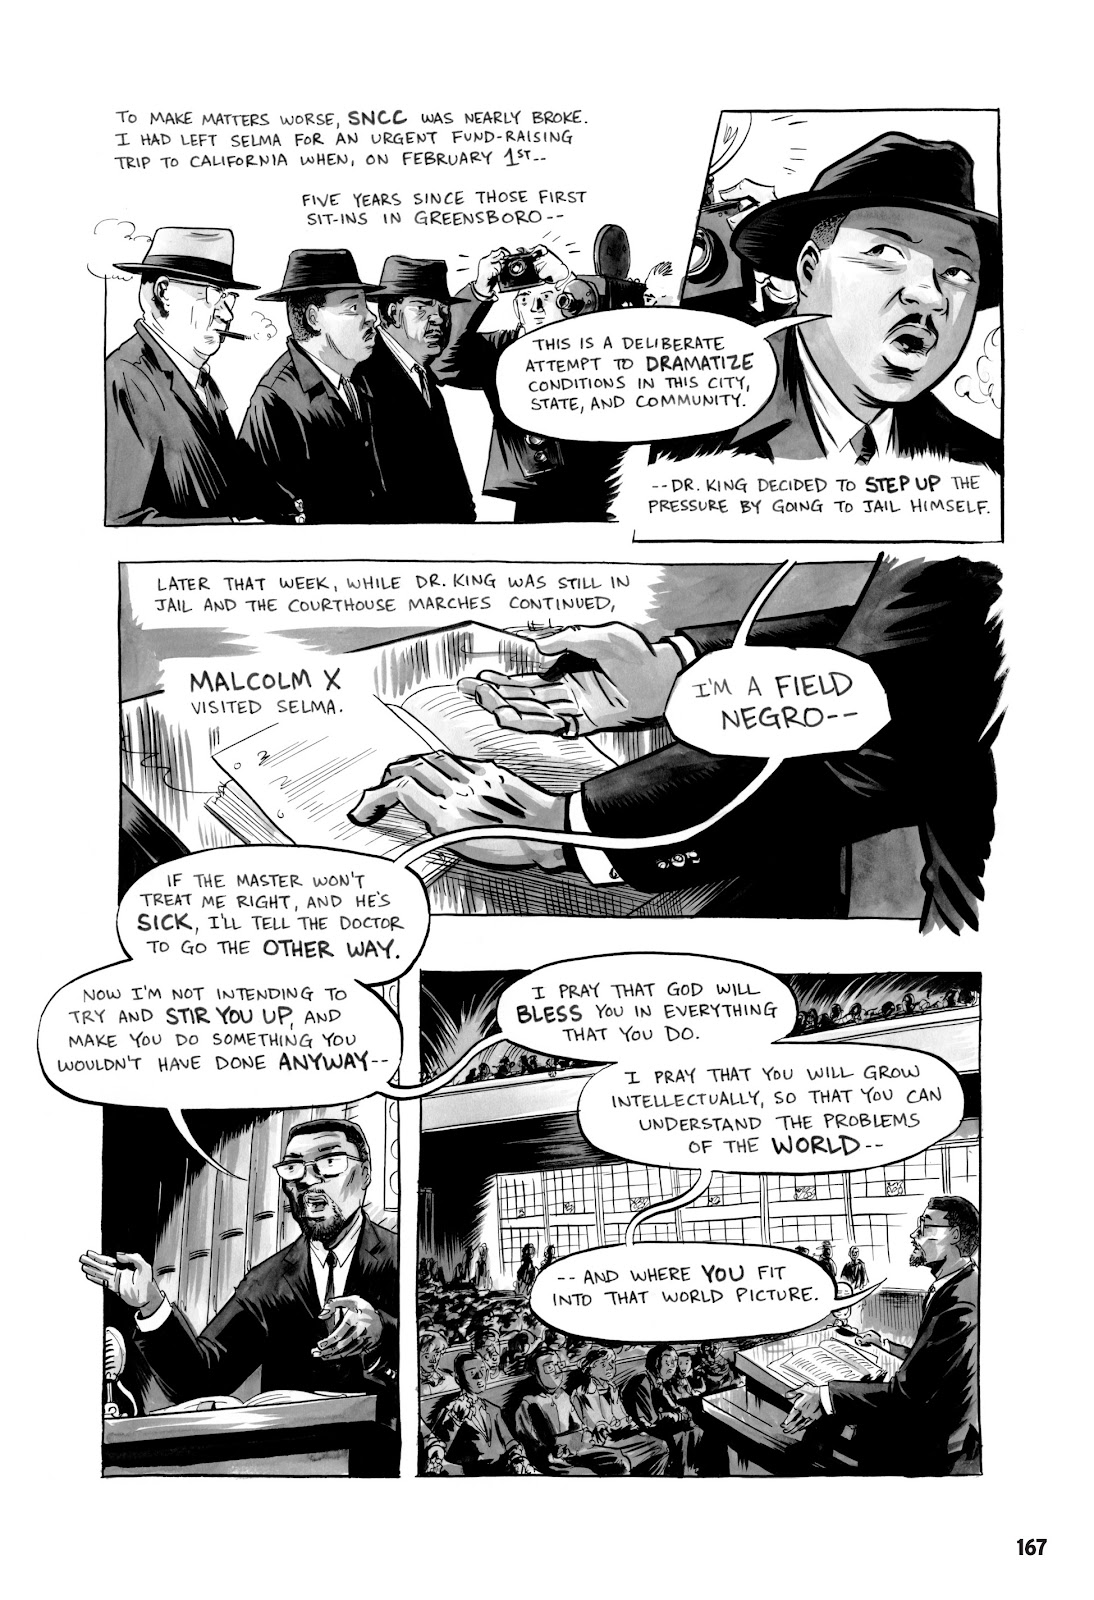 March 3 Page 161